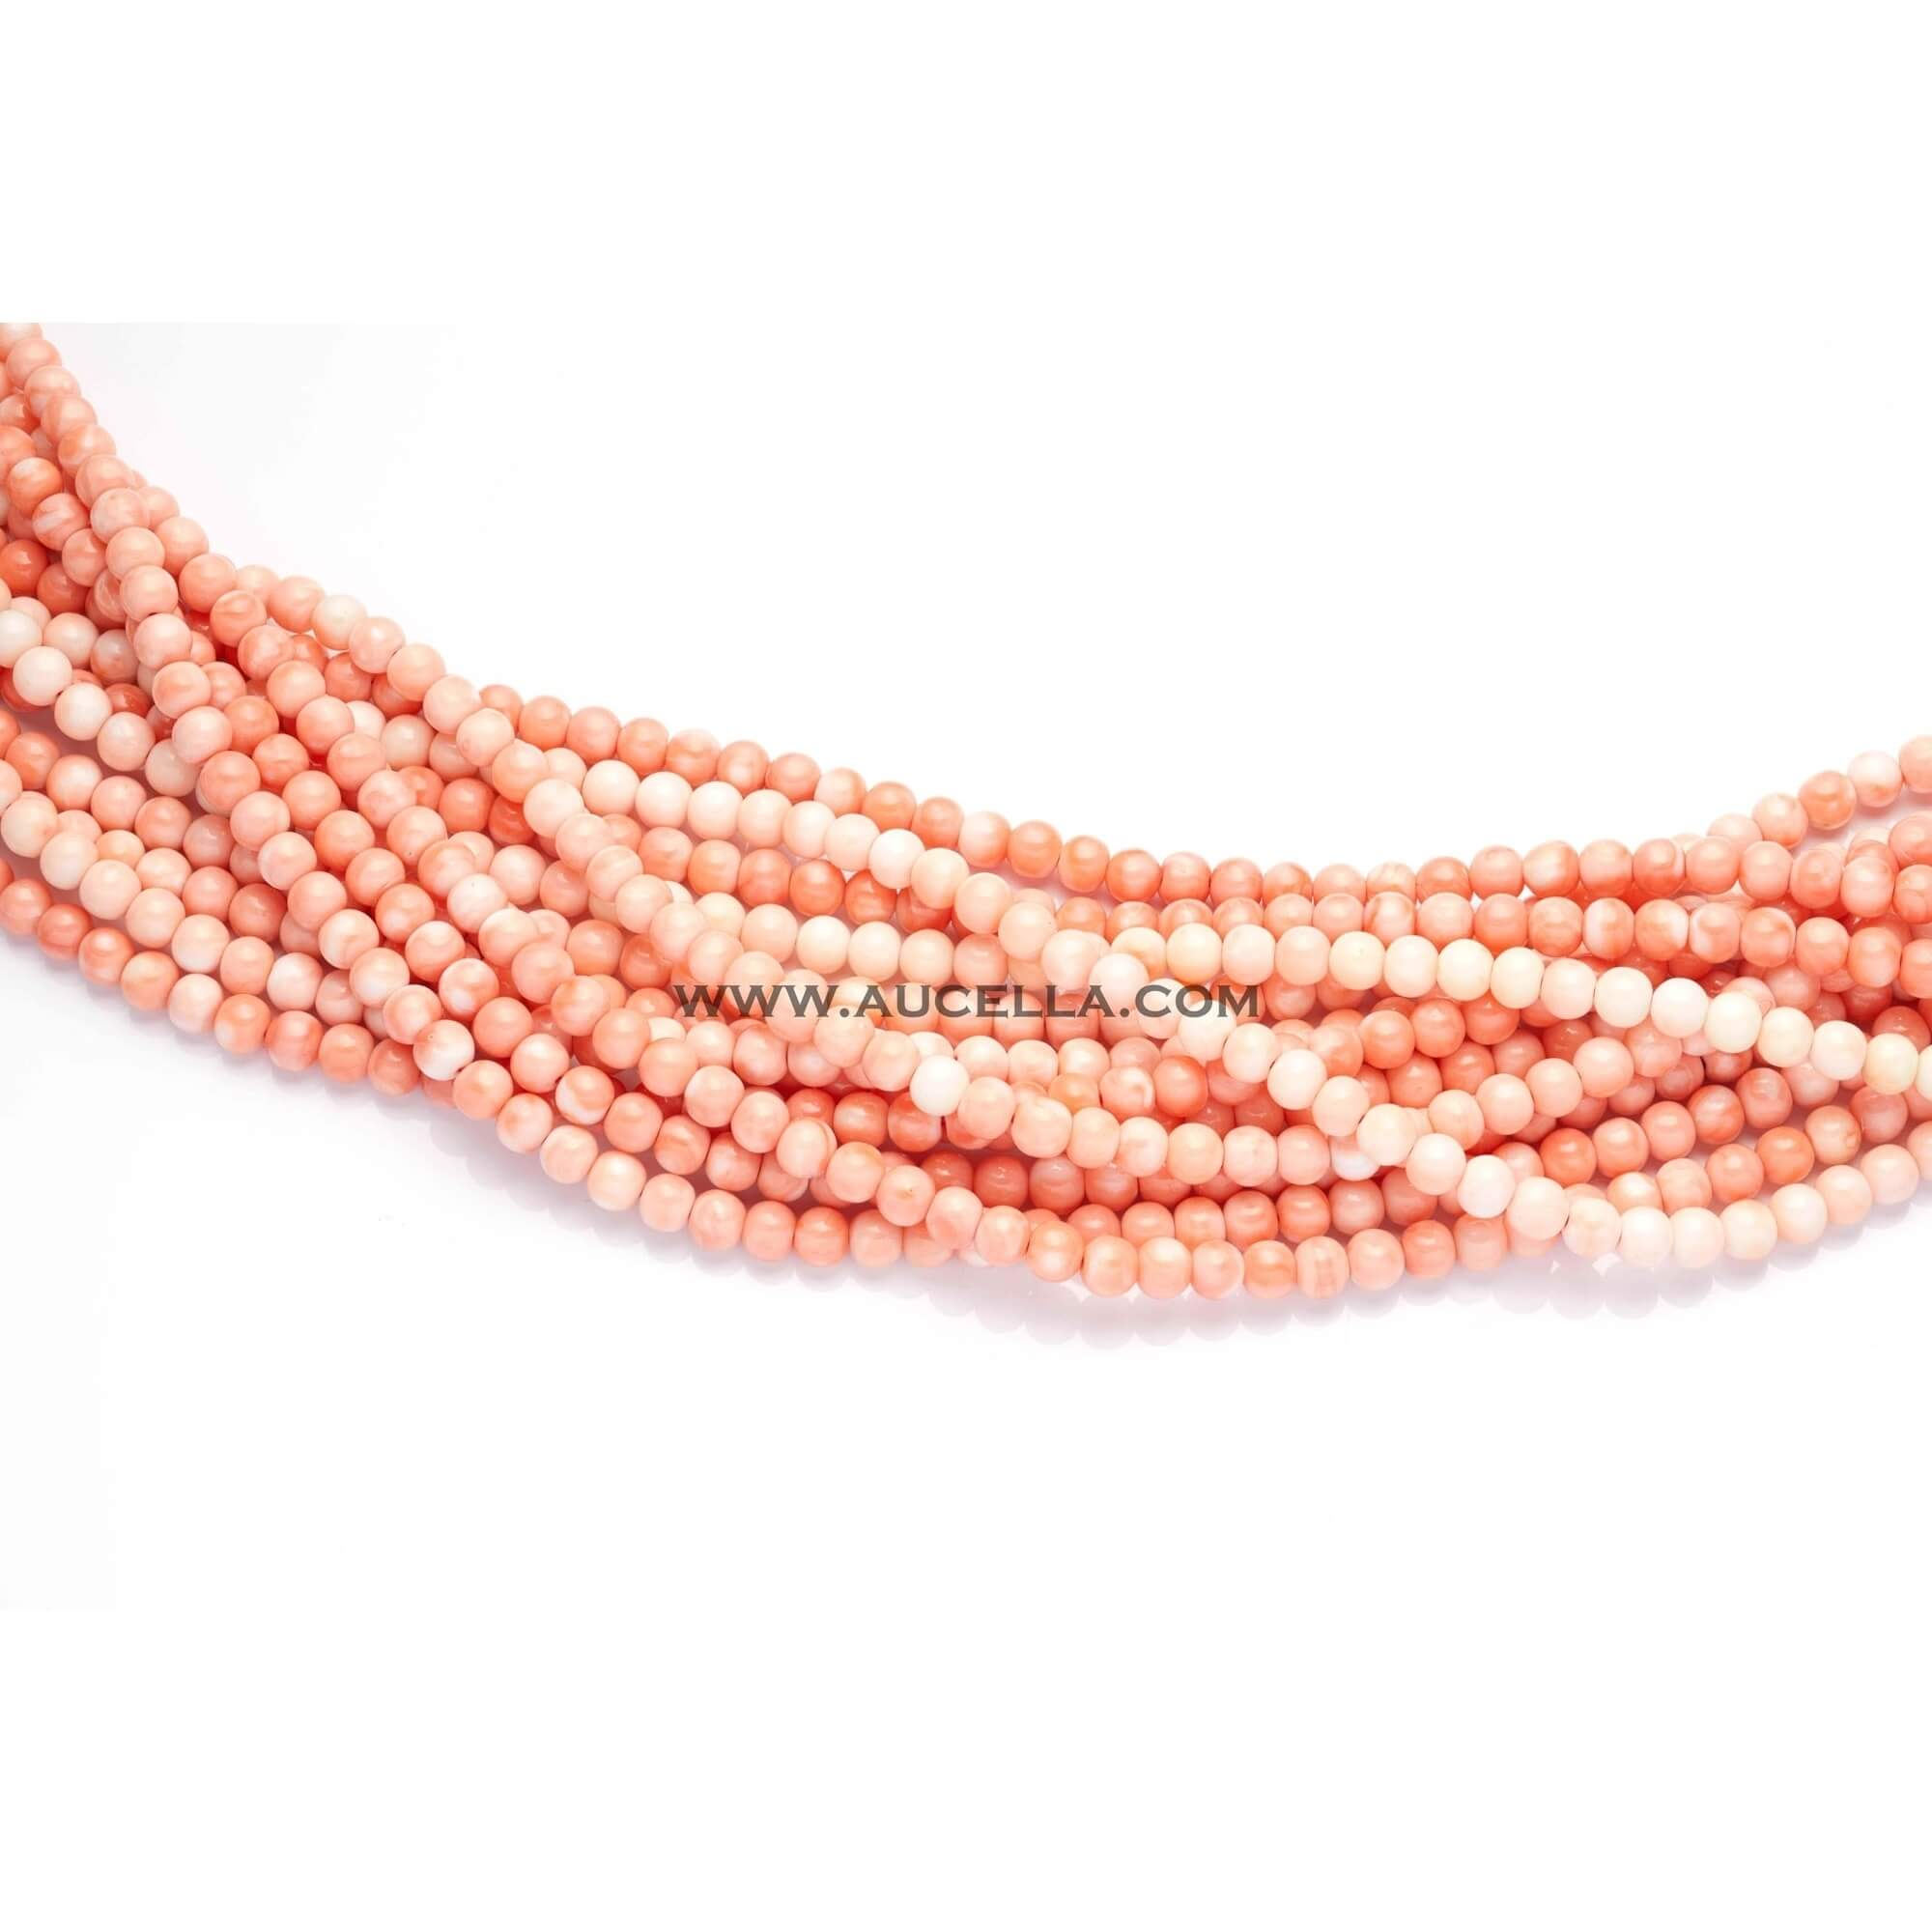 Natural pink coral beads shape size mm 6